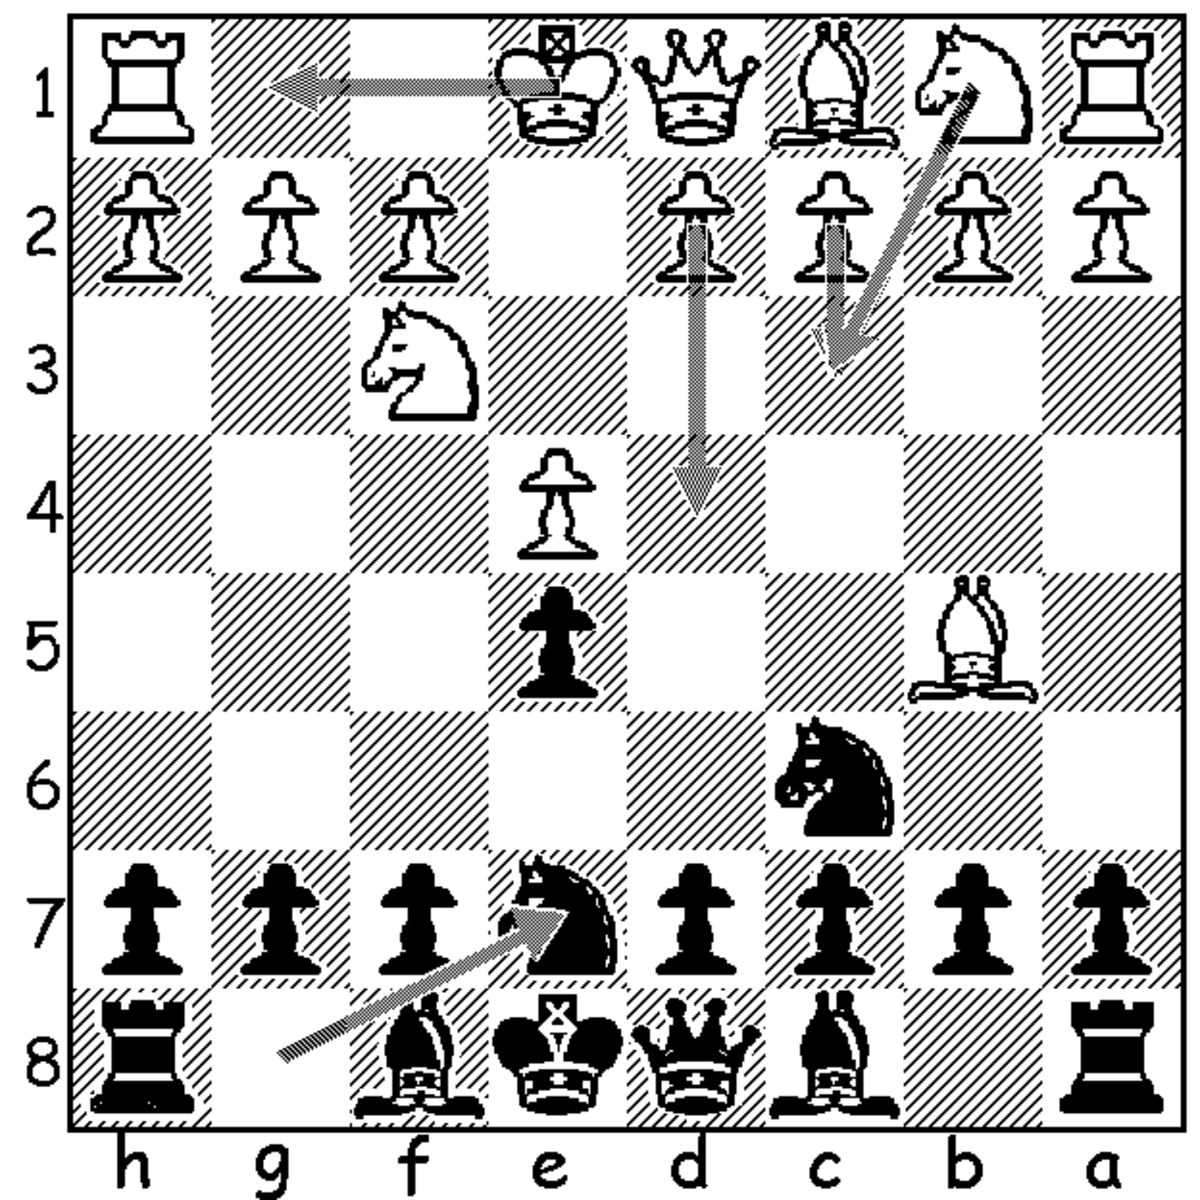 This image shows the position following 3...Nge7 in the Ruy Lopez, signifying the Cozio Defense. It also shows white's four most common fourth move options: 0-0, c3, Nc3 and d4.